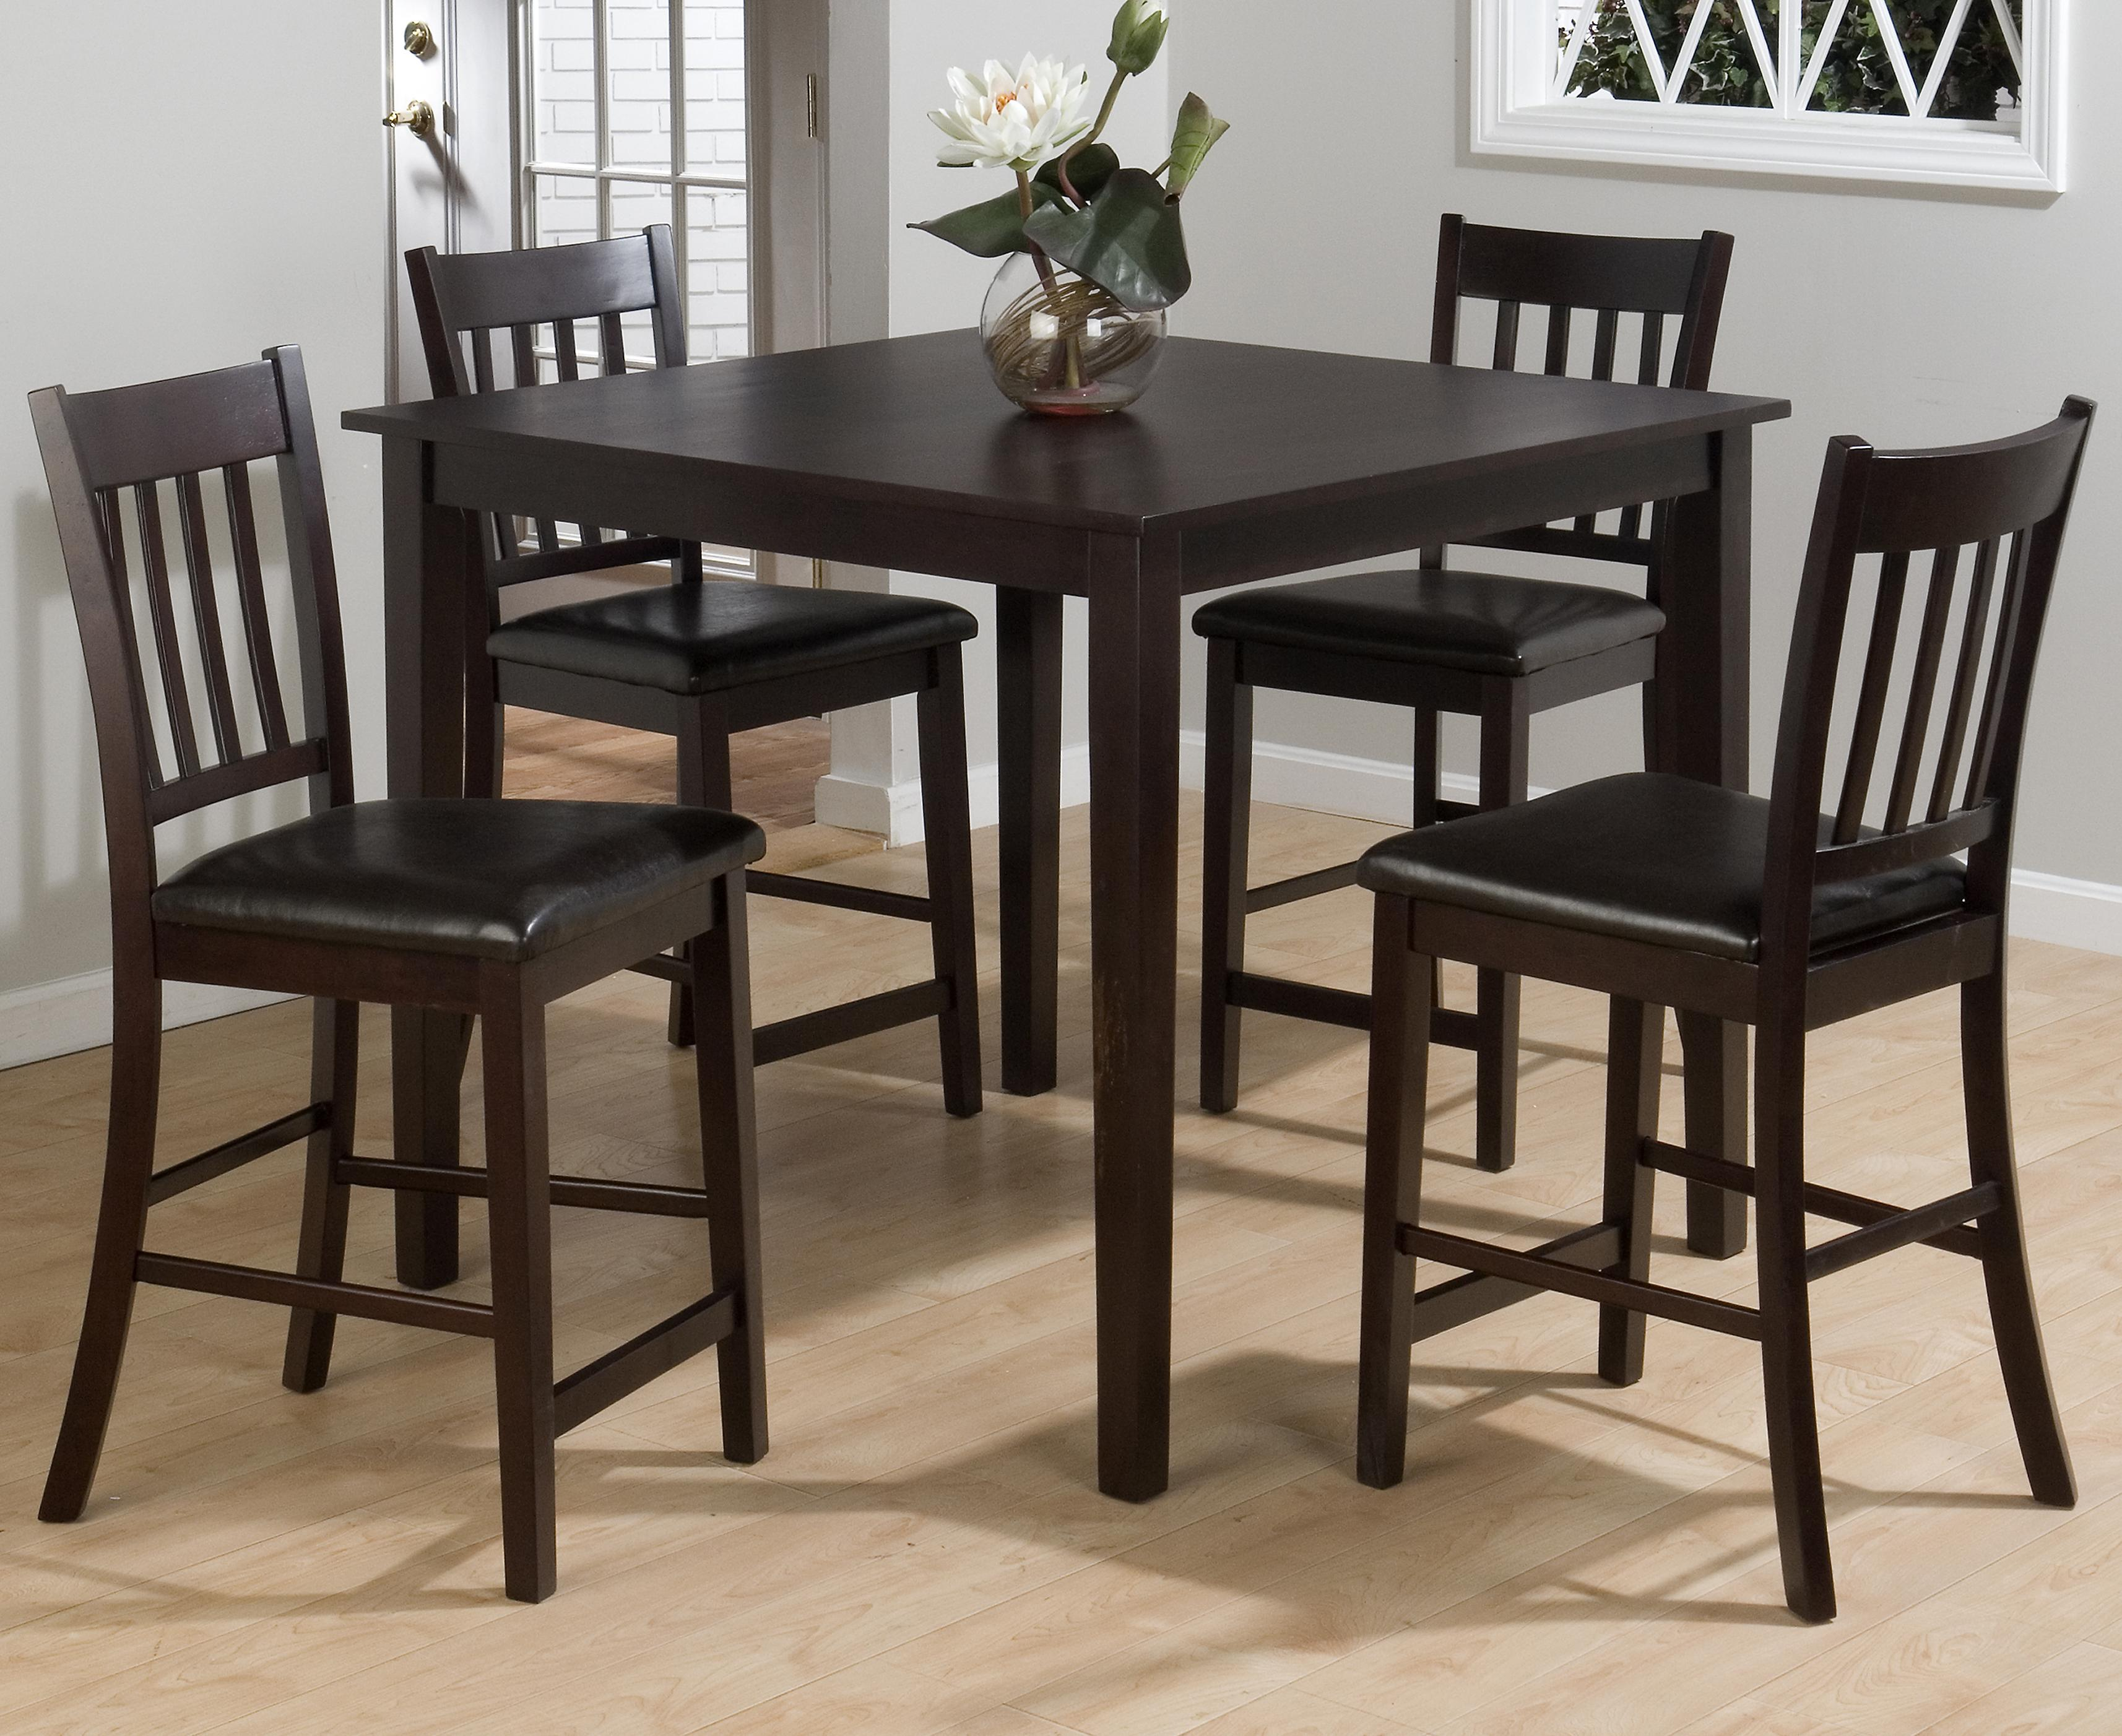 high table and chairs for kitchen hard floor chair mat canada jofran marin county 5 piece counter height set pub